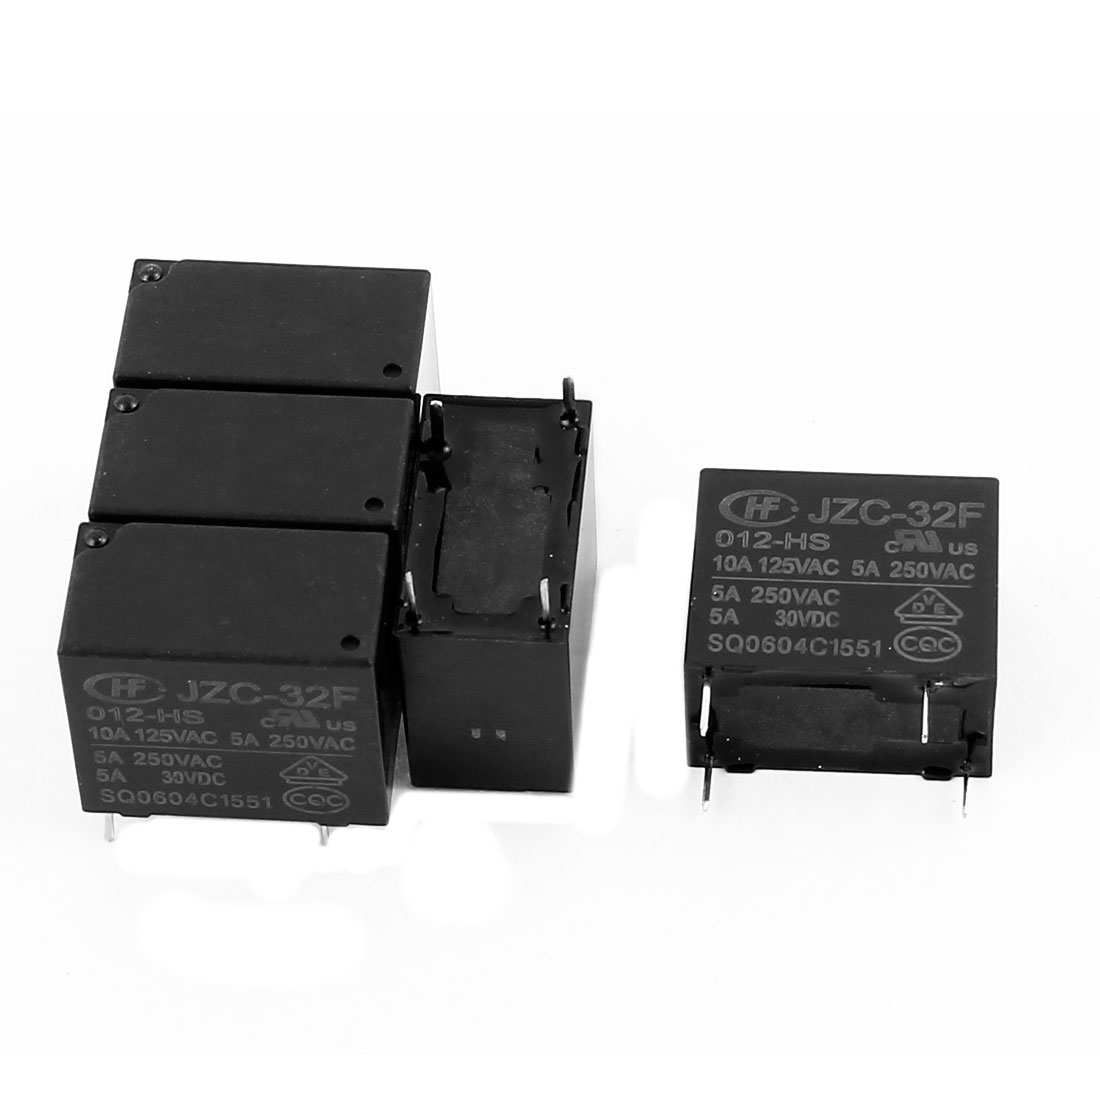 5 Pcs 12VDC 250VAC 5A 4 Terminal SPST NO JZC-32F-012-HS Power Relay